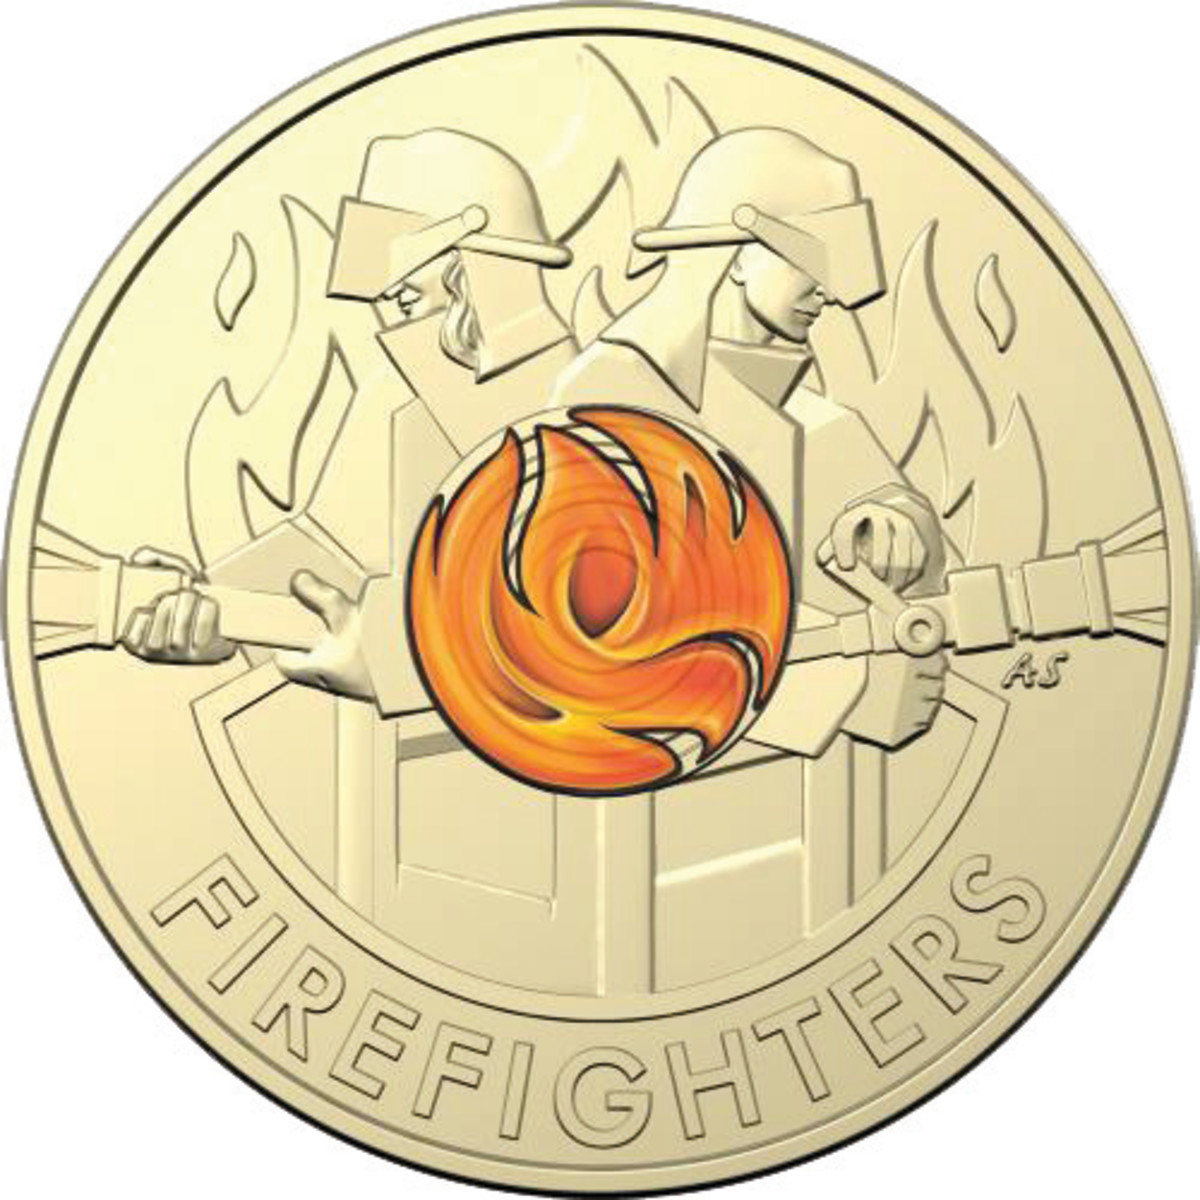 Australia is raising money while marking  a current even with its recently  issued $2 Wildfire coin.